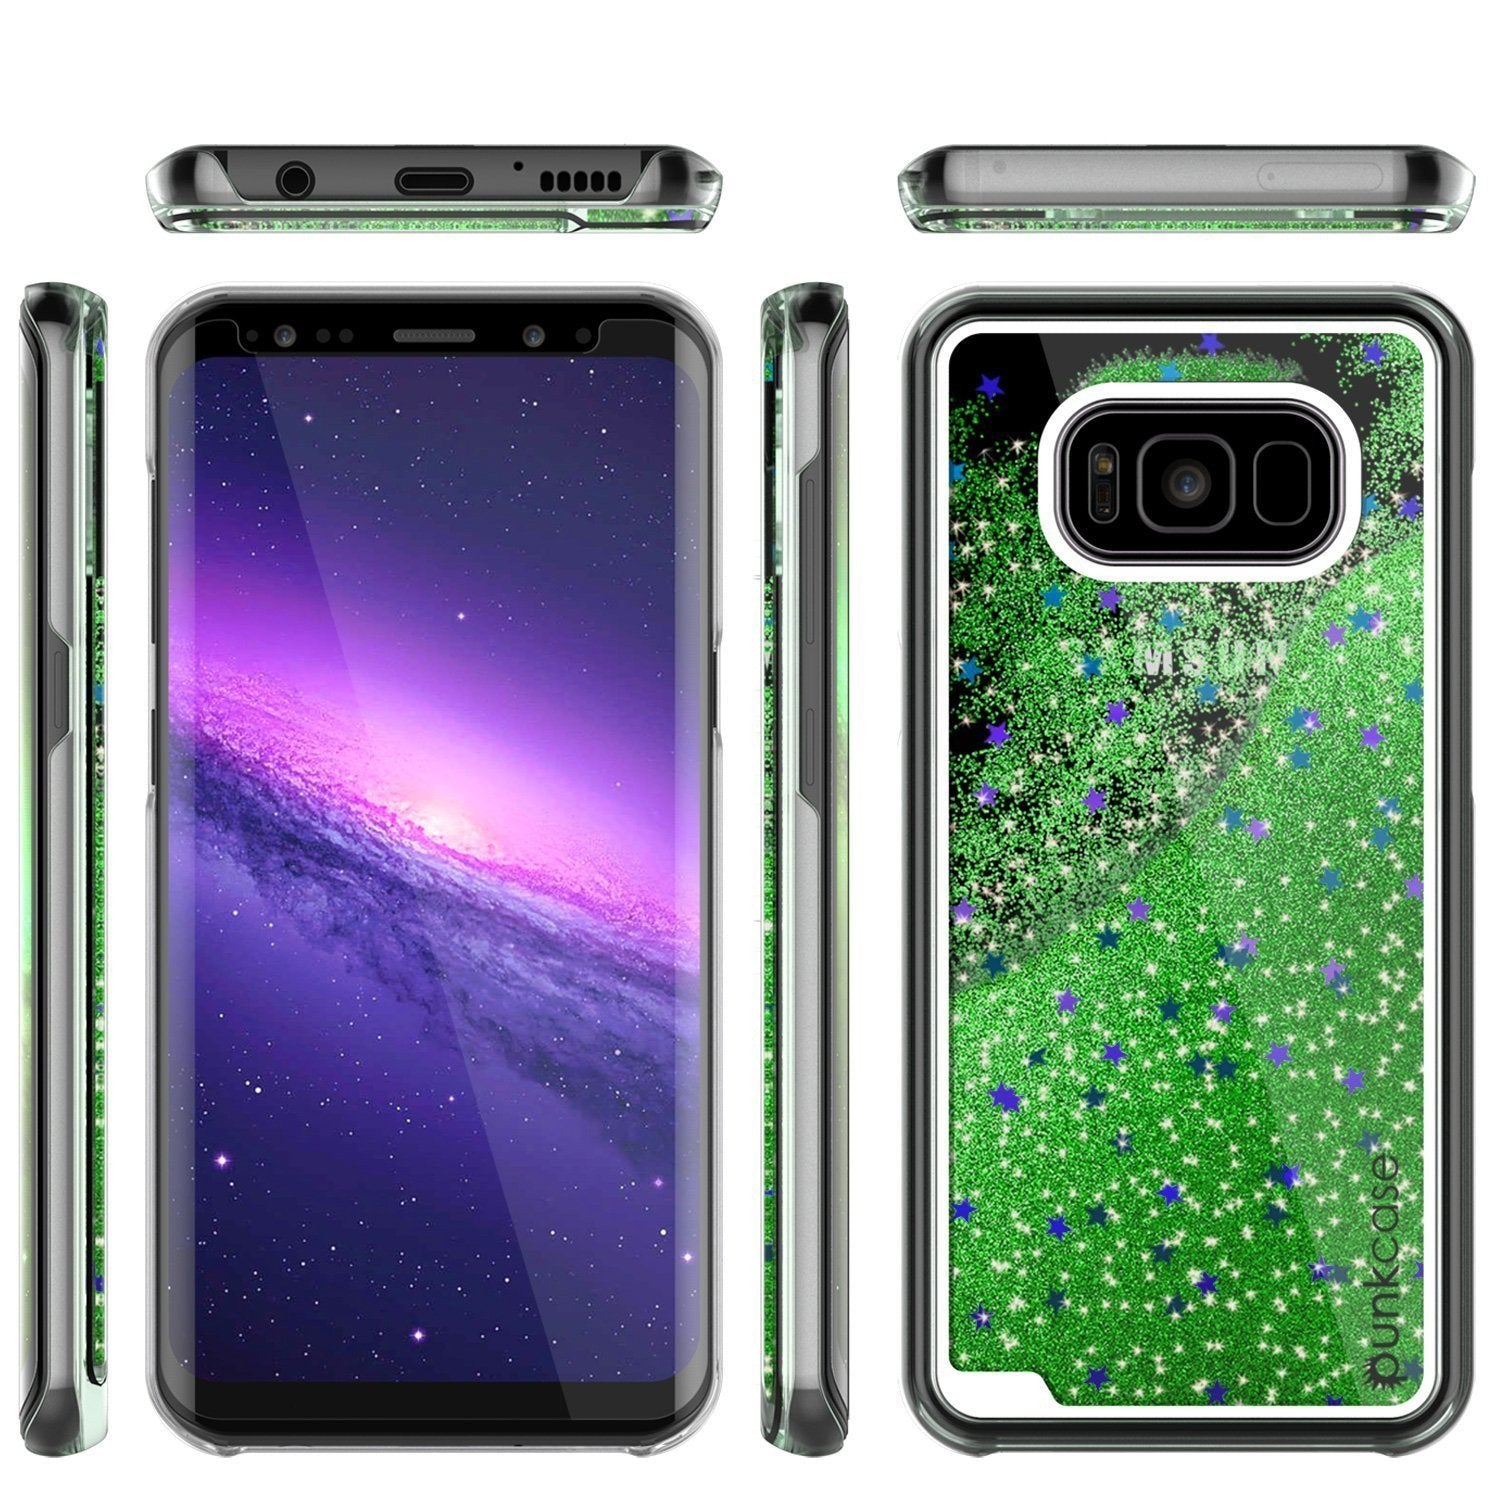 S8 Plus Case, Punkcase [Liquid Series] Protective Dual Layer Floating Glitter Cover with lots of Bling & Sparkle + PunkShield Screen Protector for Samsungs Galaxy S8+ [Green] - PunkCase NZ